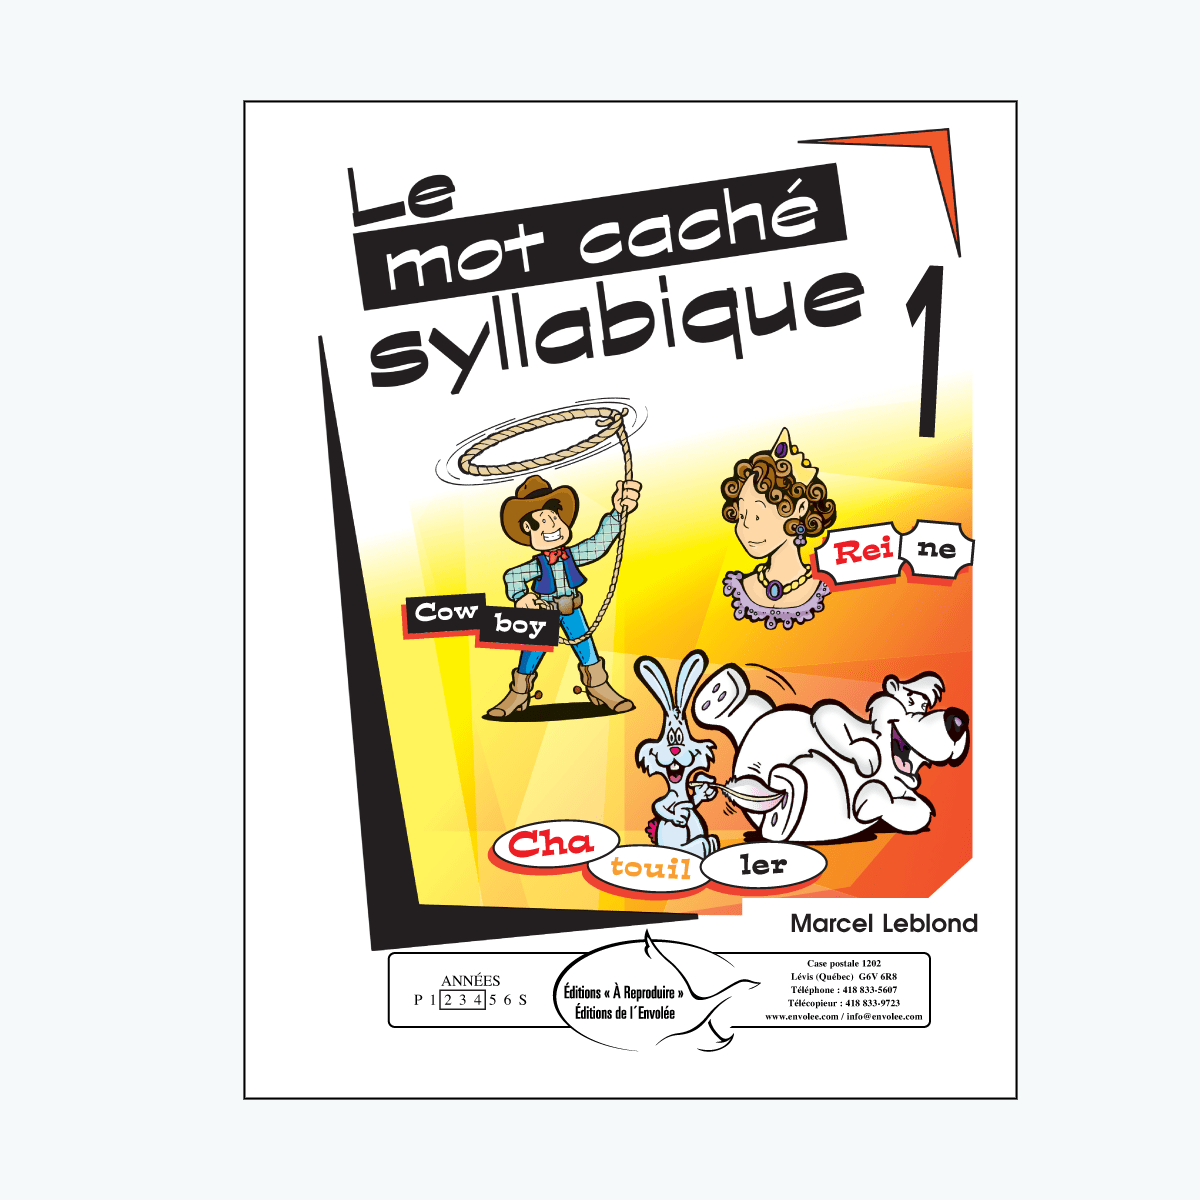 Le mot caché syllabique, vol. 1